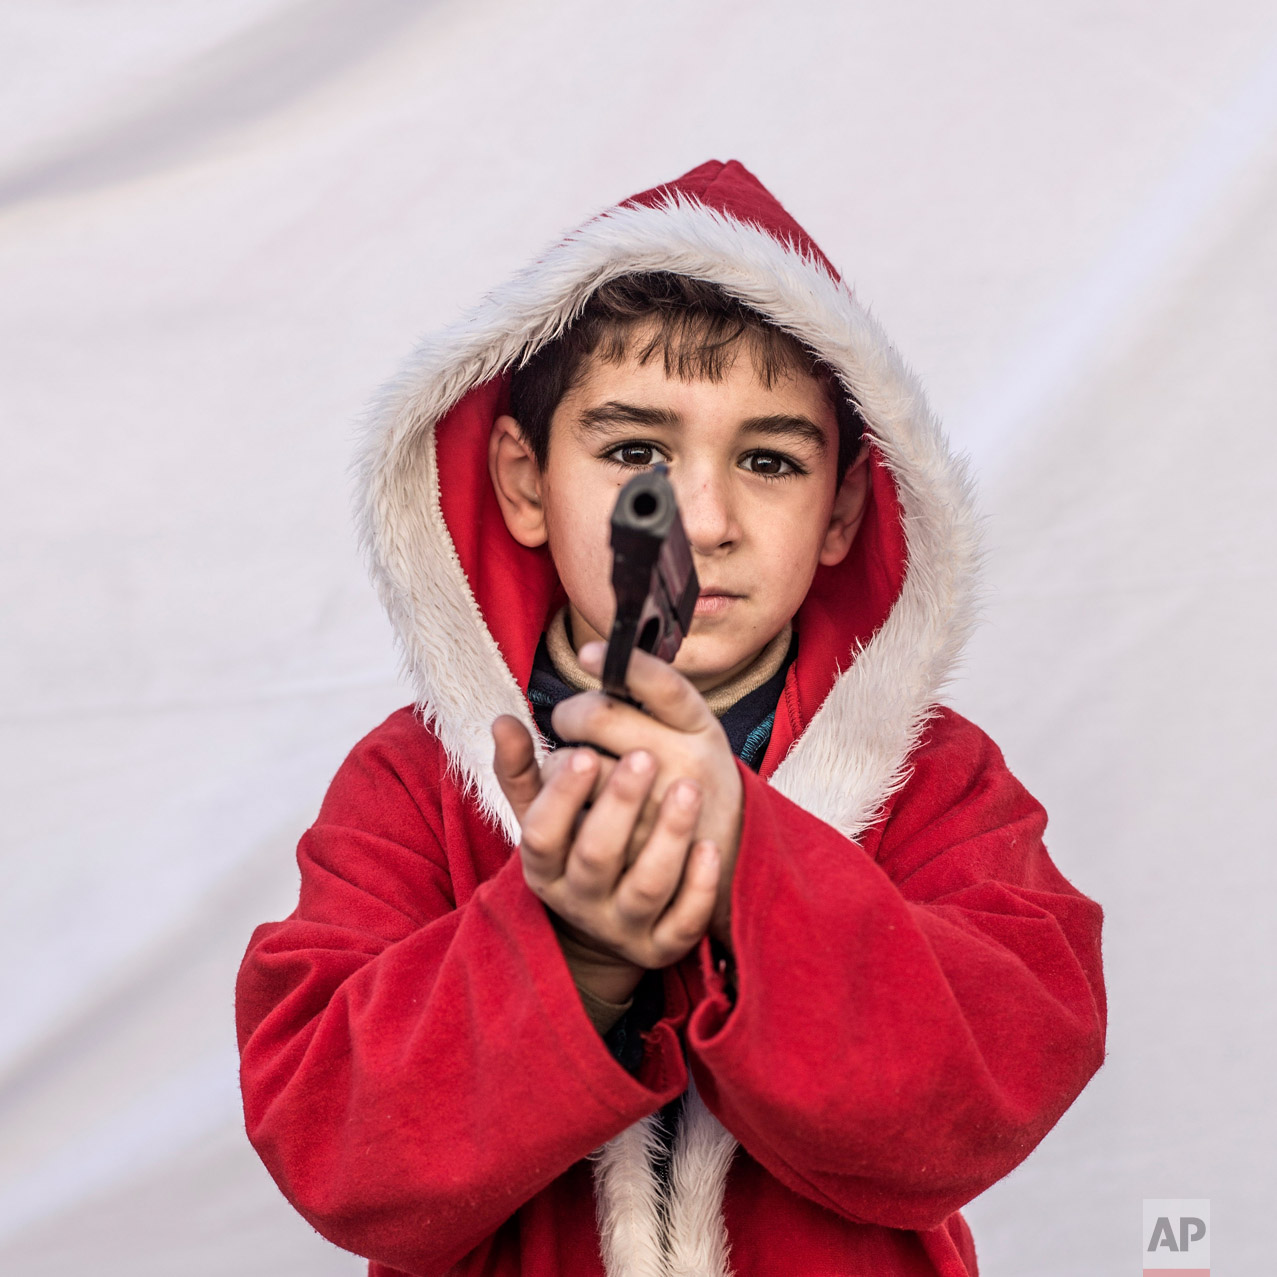 Kayaks, 7, poses for a picture holding a toy gun in a camp where Christians displaced by Islamic State militants are living, in Irbil, Iraq, Friday, Dec. 23, 2016. Iraq's Christians are marking the holiday in this camp for displaced people with a sense of worry and despair, unable to return to their towns they were forced to flee two years ago by the Islamic State group's onslaught. (AP Photo/Manu Brabo)